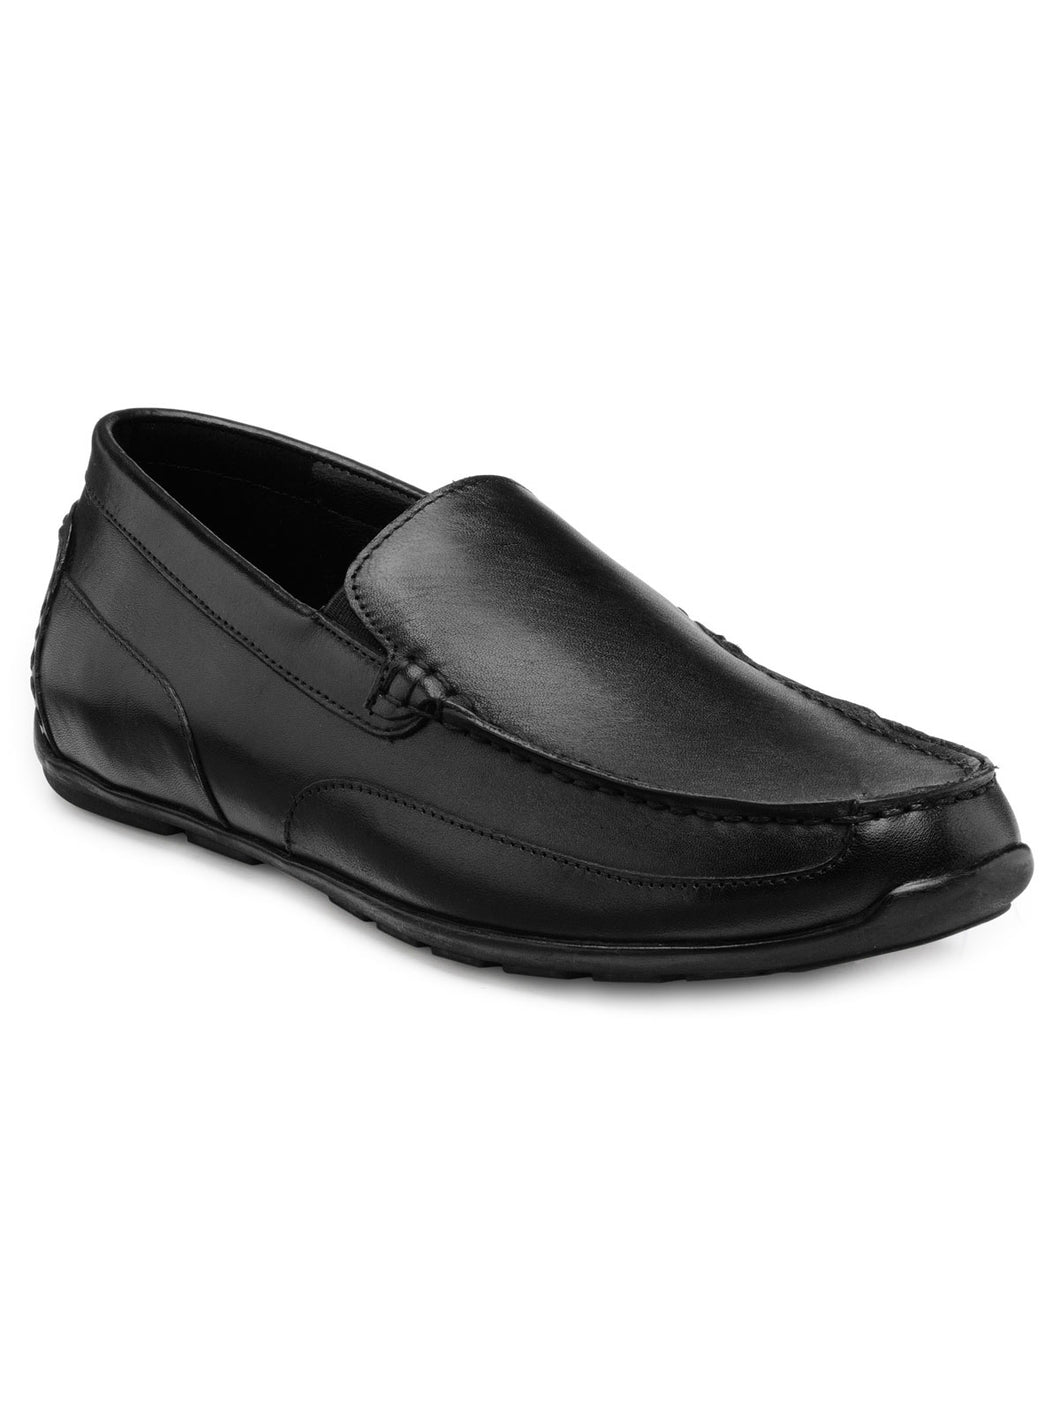 Teakwood Leather Men's Black Slip-ons Shoes